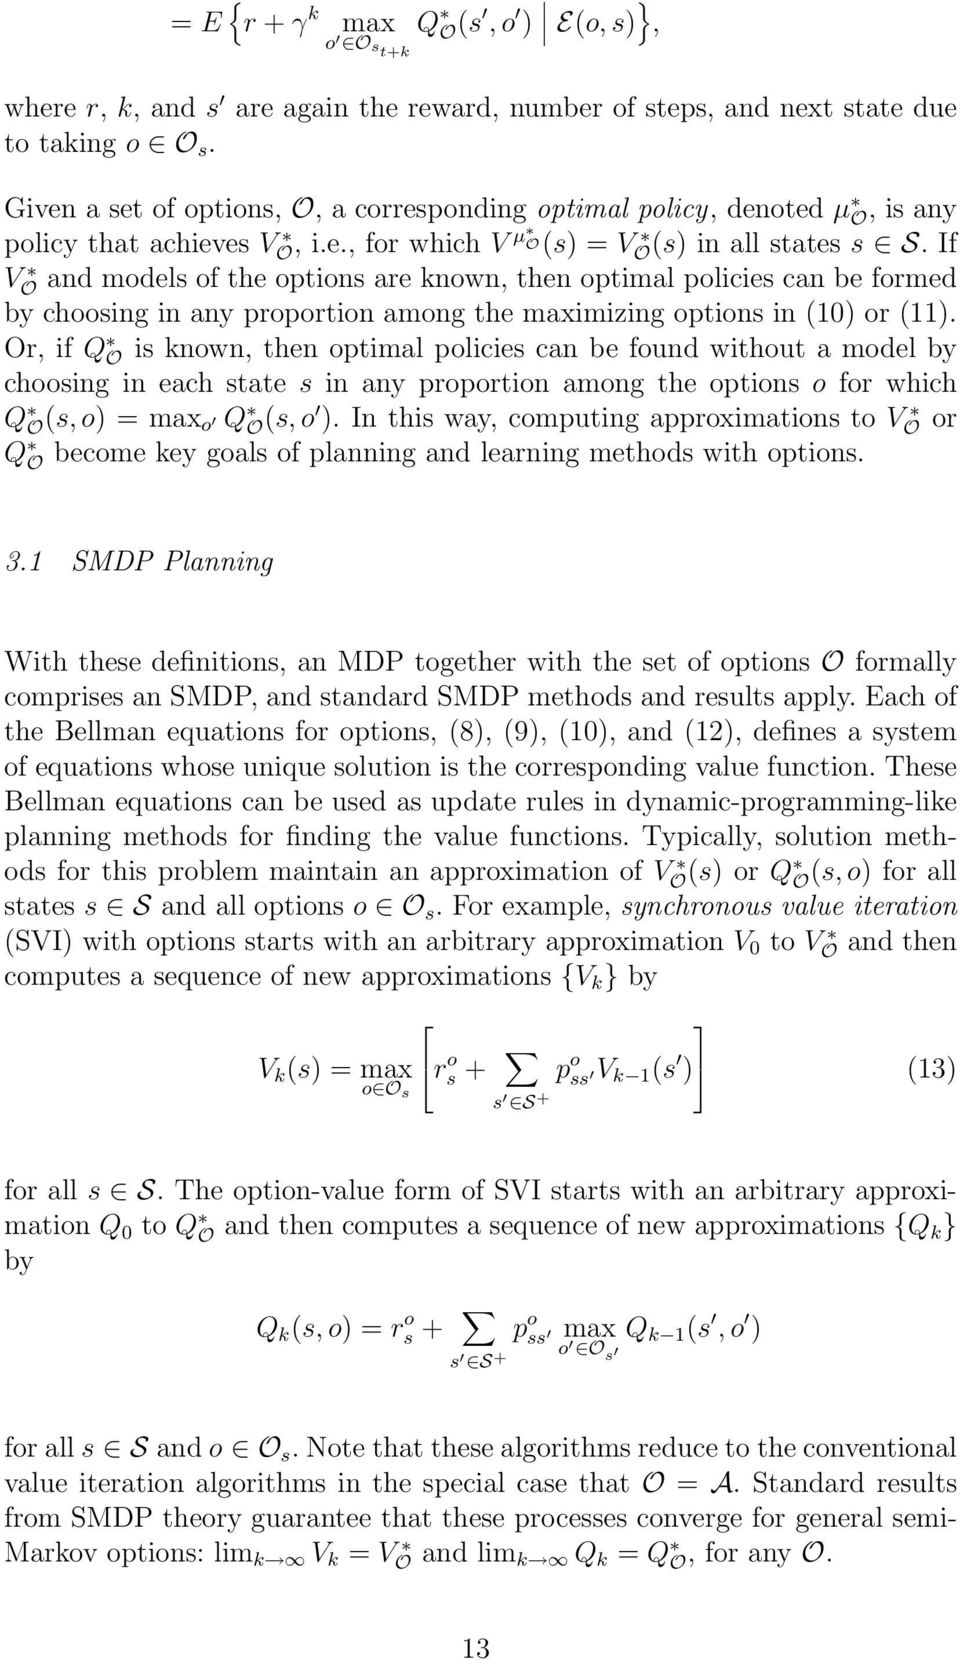 If V O and models of the options are known, then optimal policies can be formed by choosing in any proportion among the maximizing options in (10) or (11).